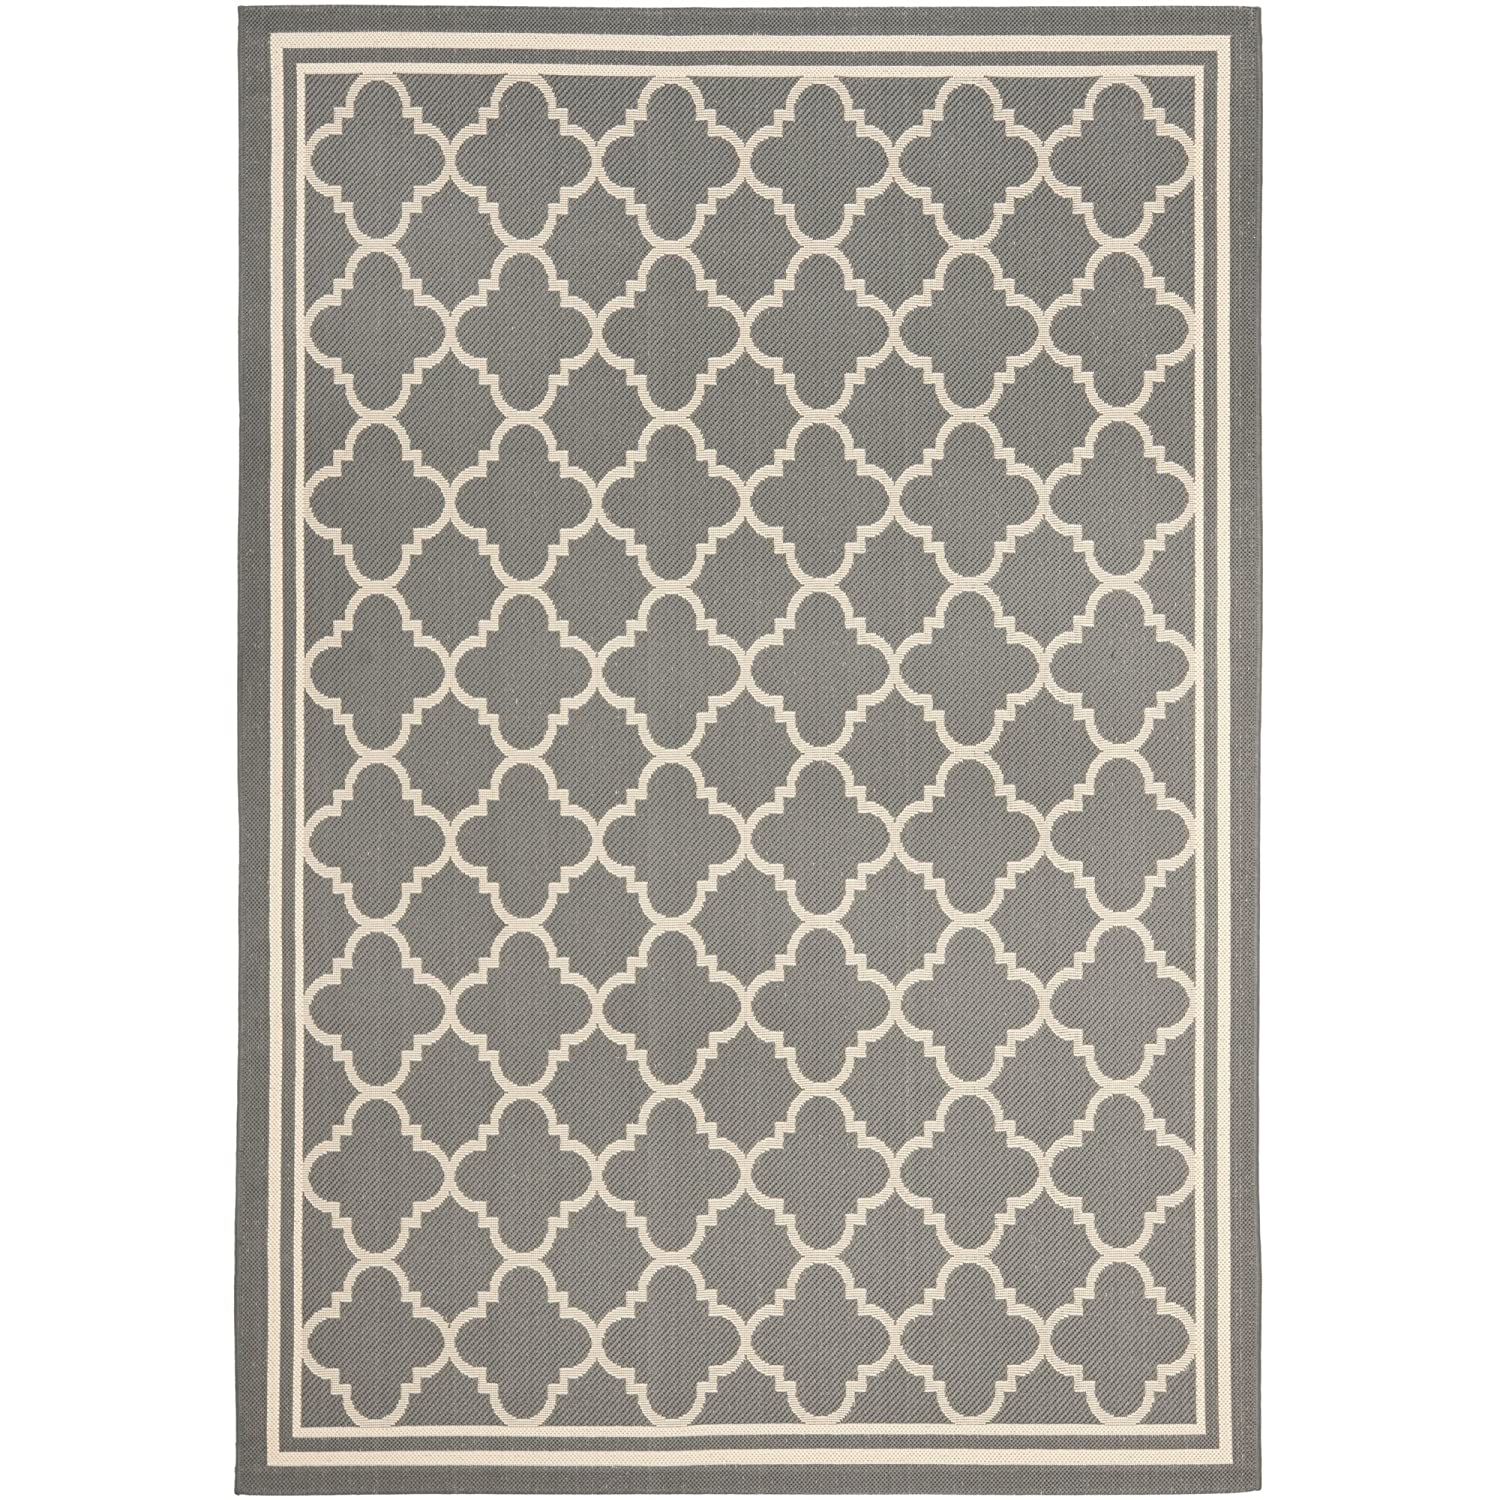 Amazon Safavieh Courtyard Indoor Outdoor Rug Anthracite/Beige